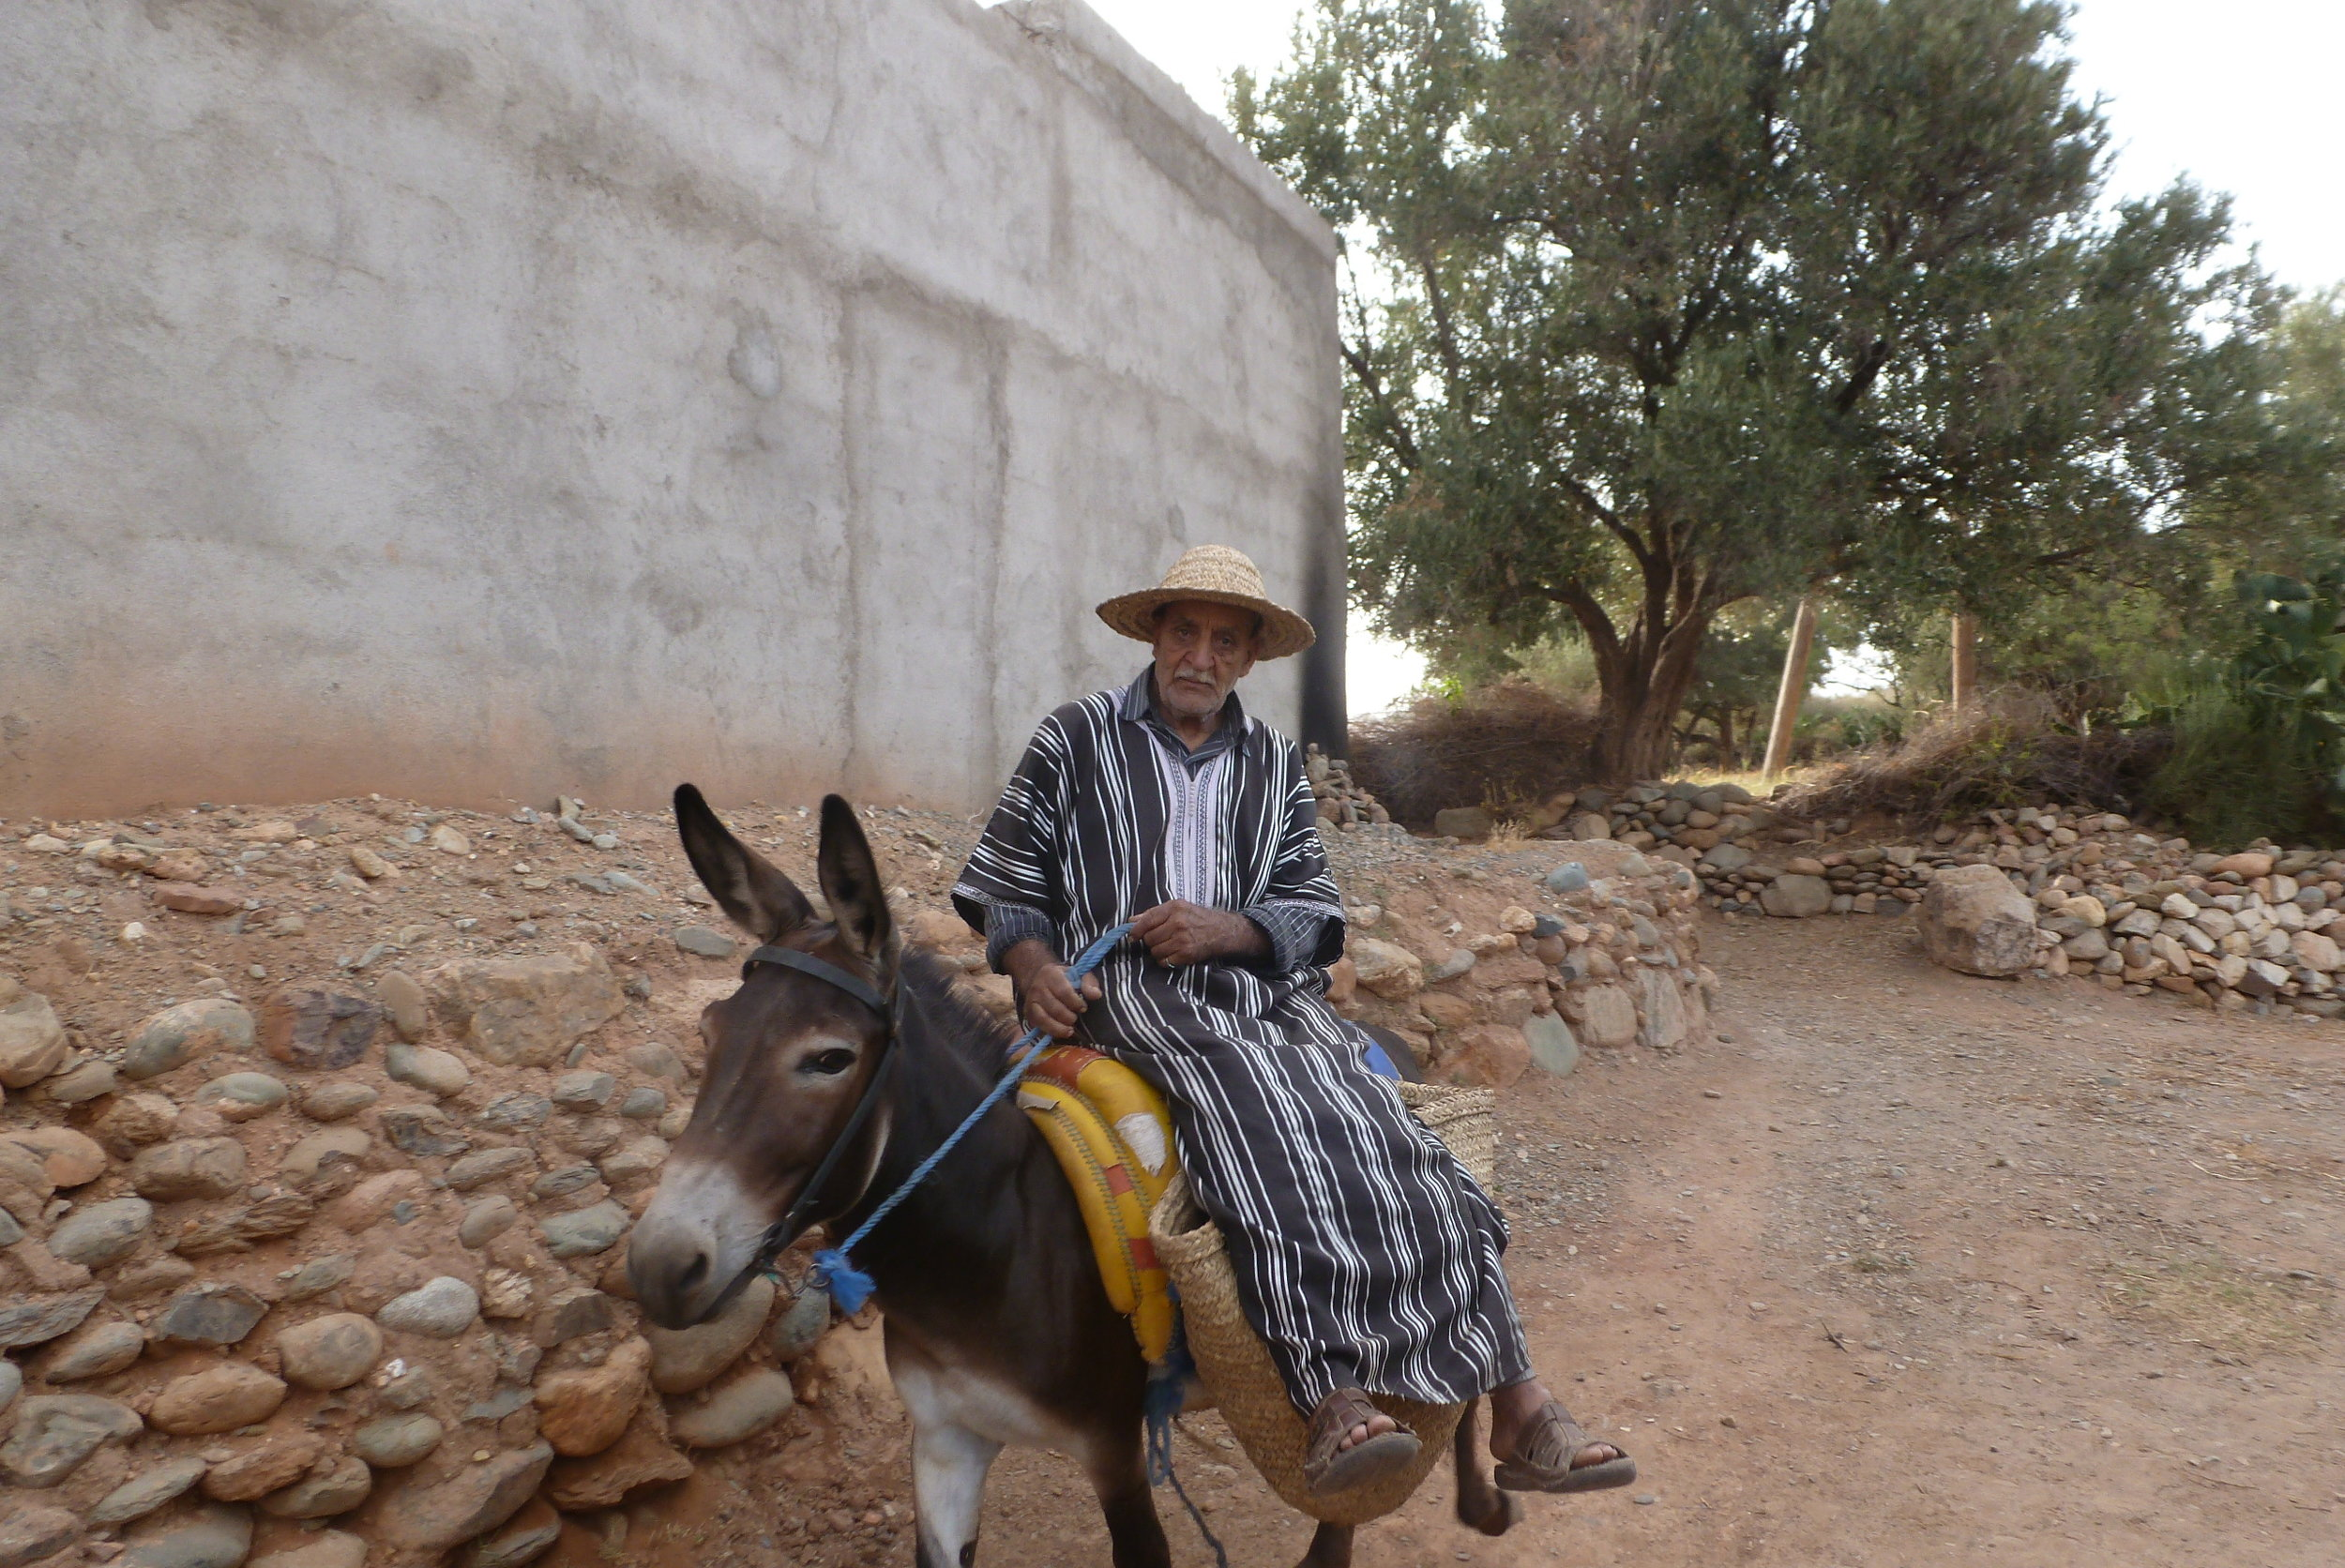 Mules and donkeys are still common modes of transport, whether on mountain trails or village roads.